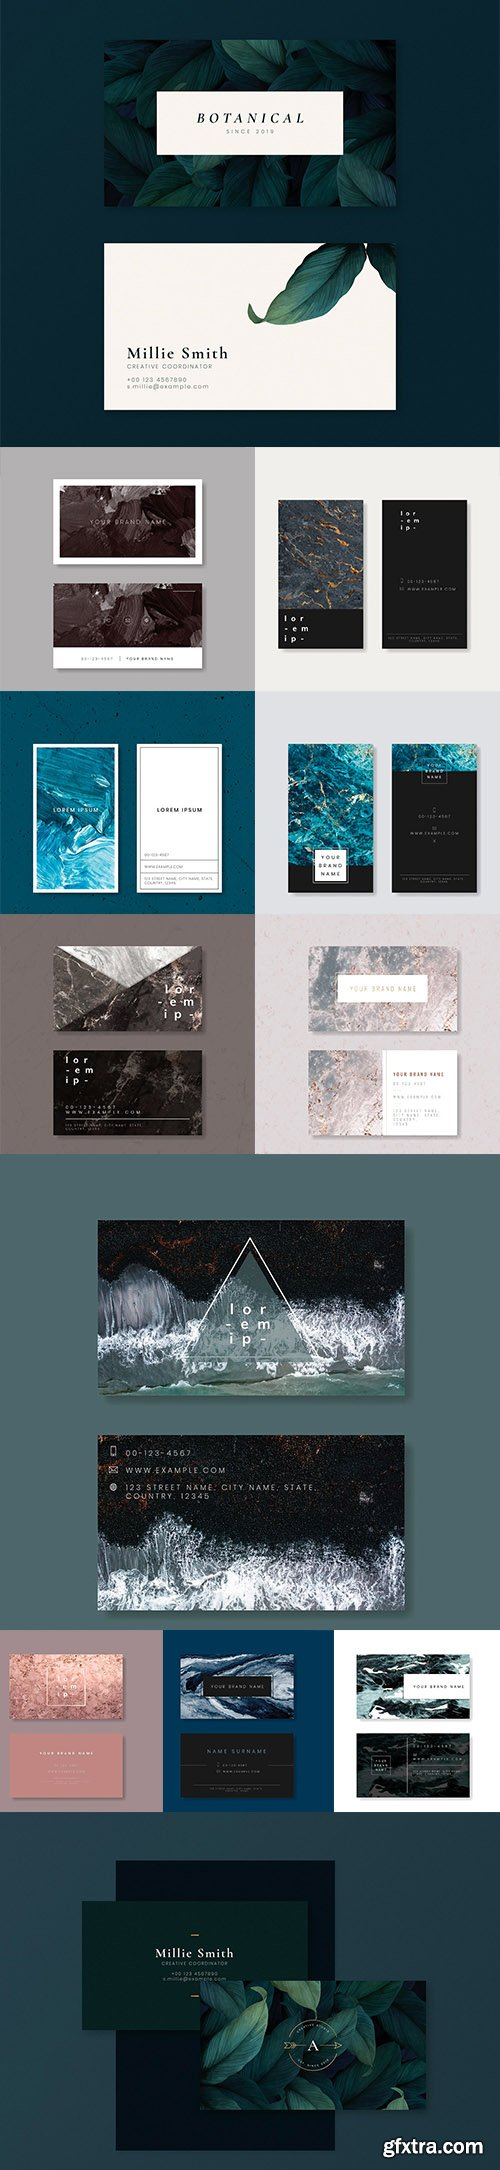 Set of Professional Business Card Templates vol3